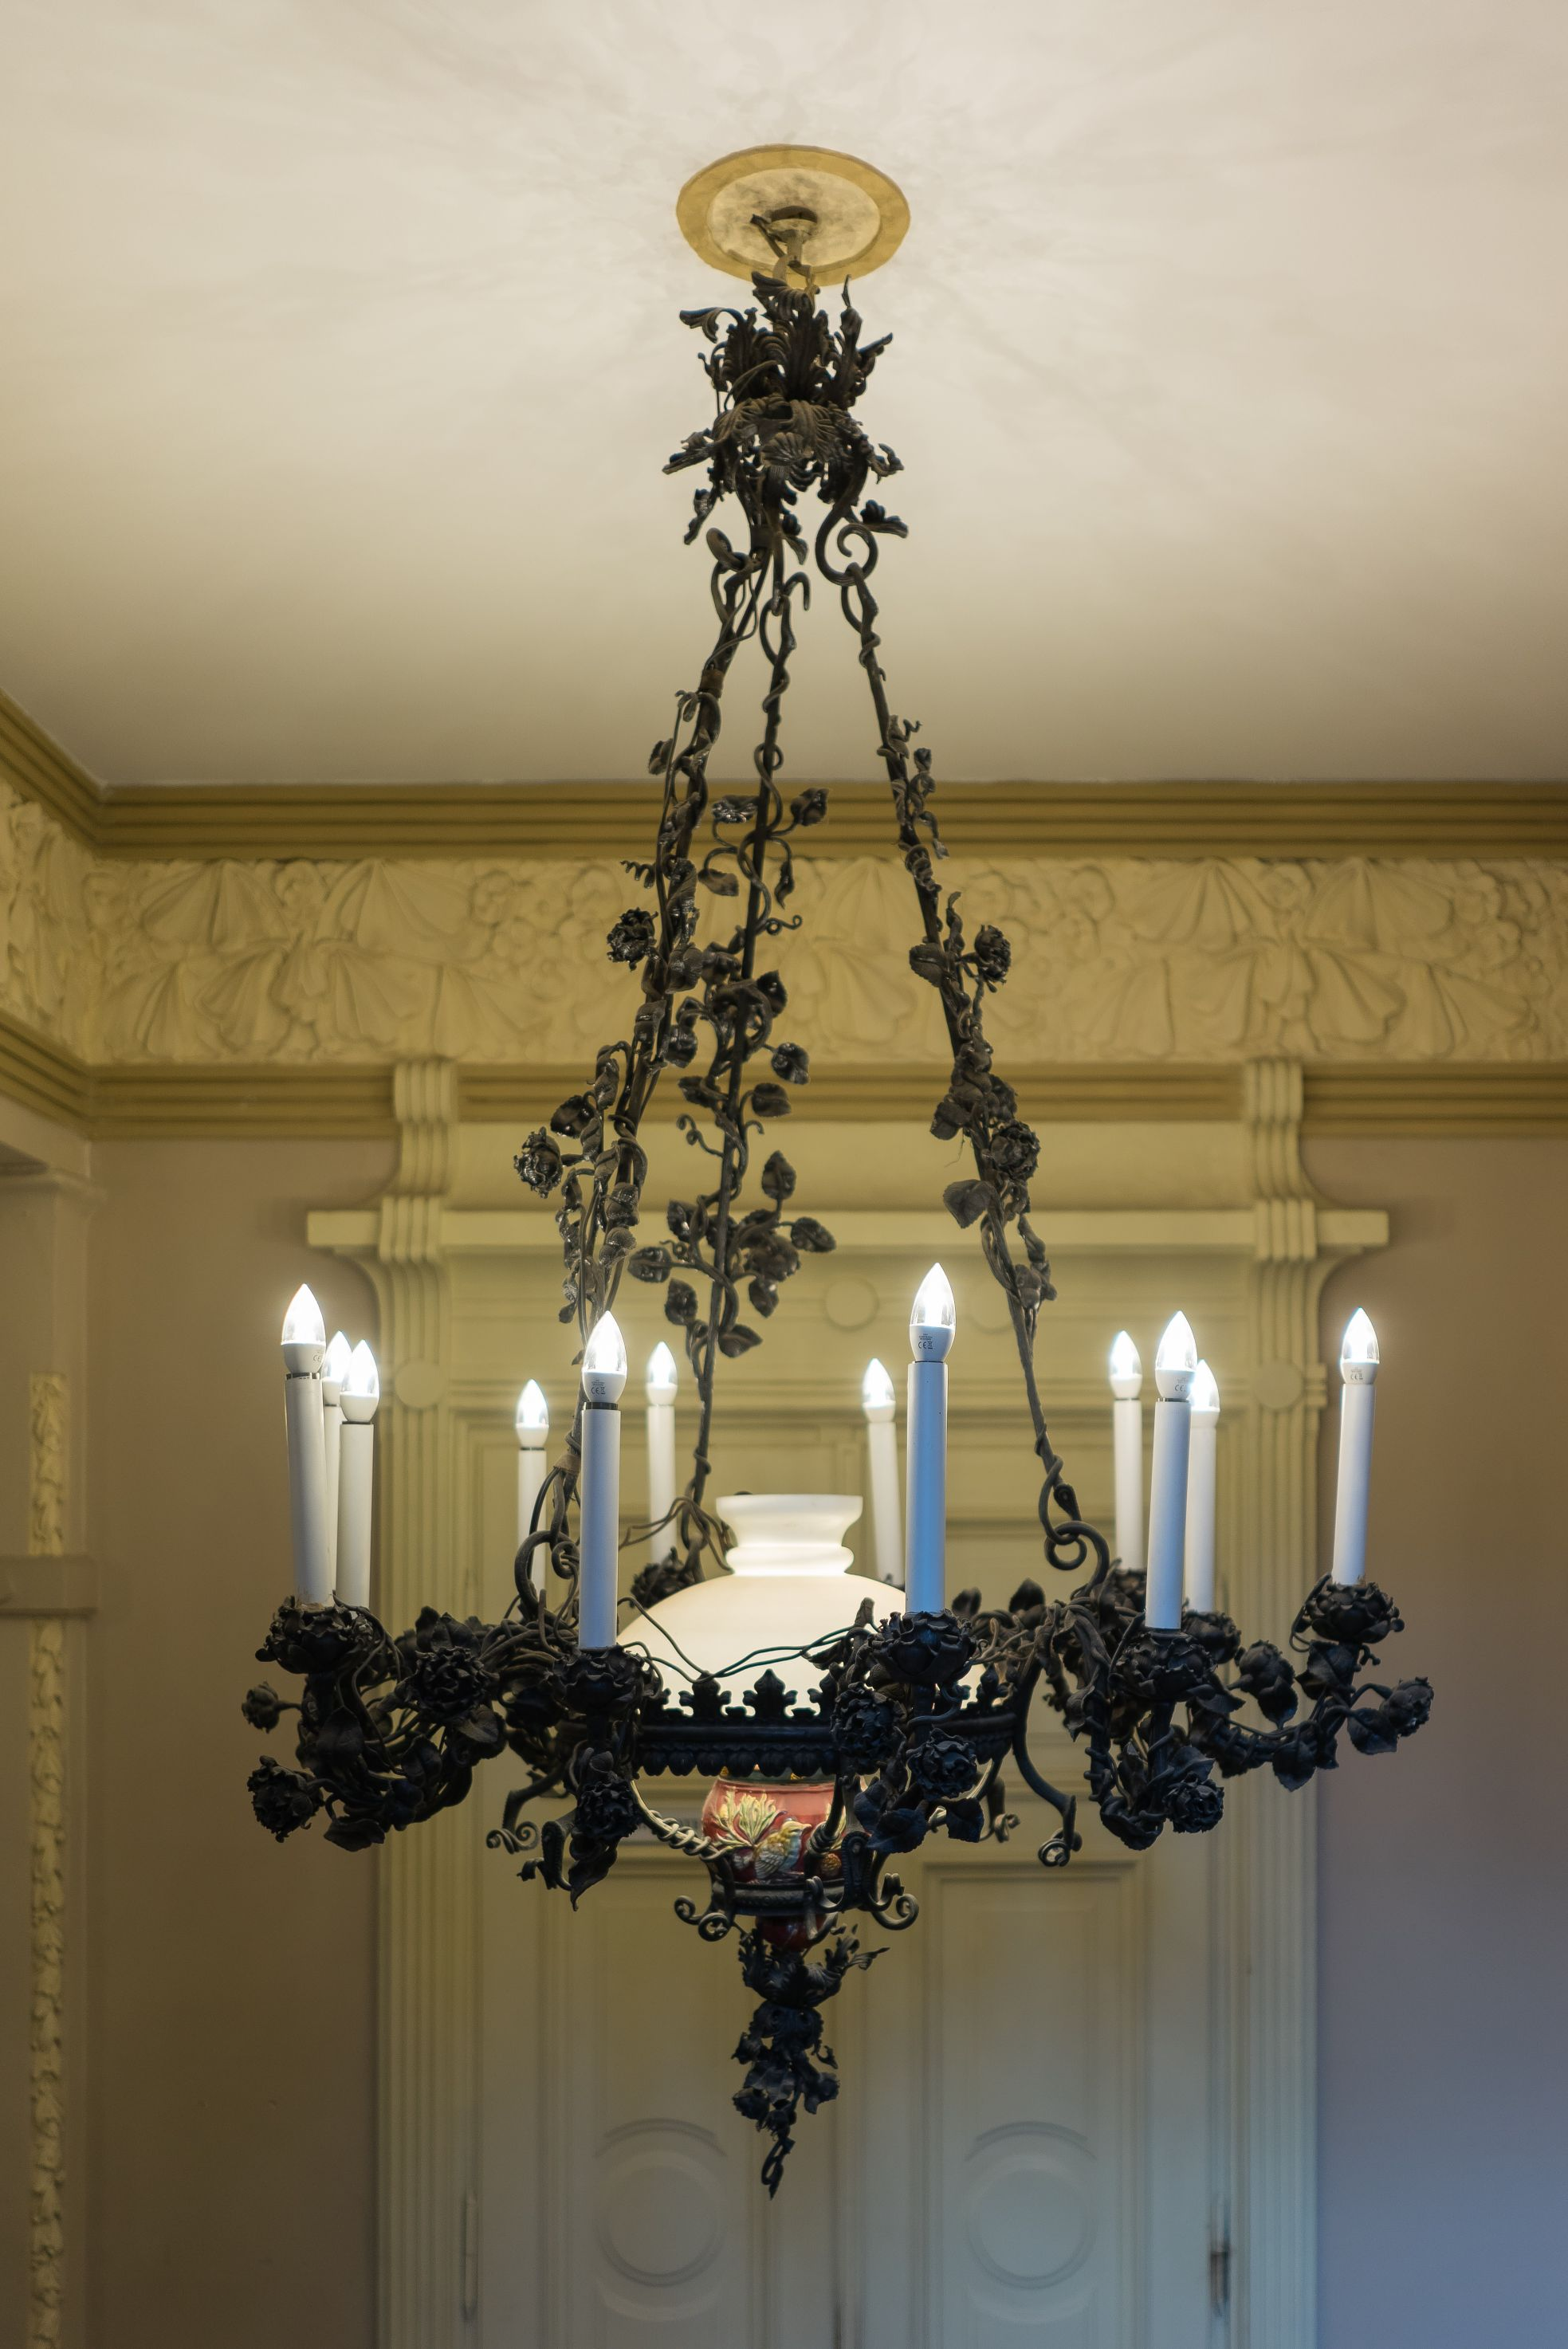 Chandelier, 1904–1905, P. Vileišis Palace. Photo by Povilas Jarmala, 2017